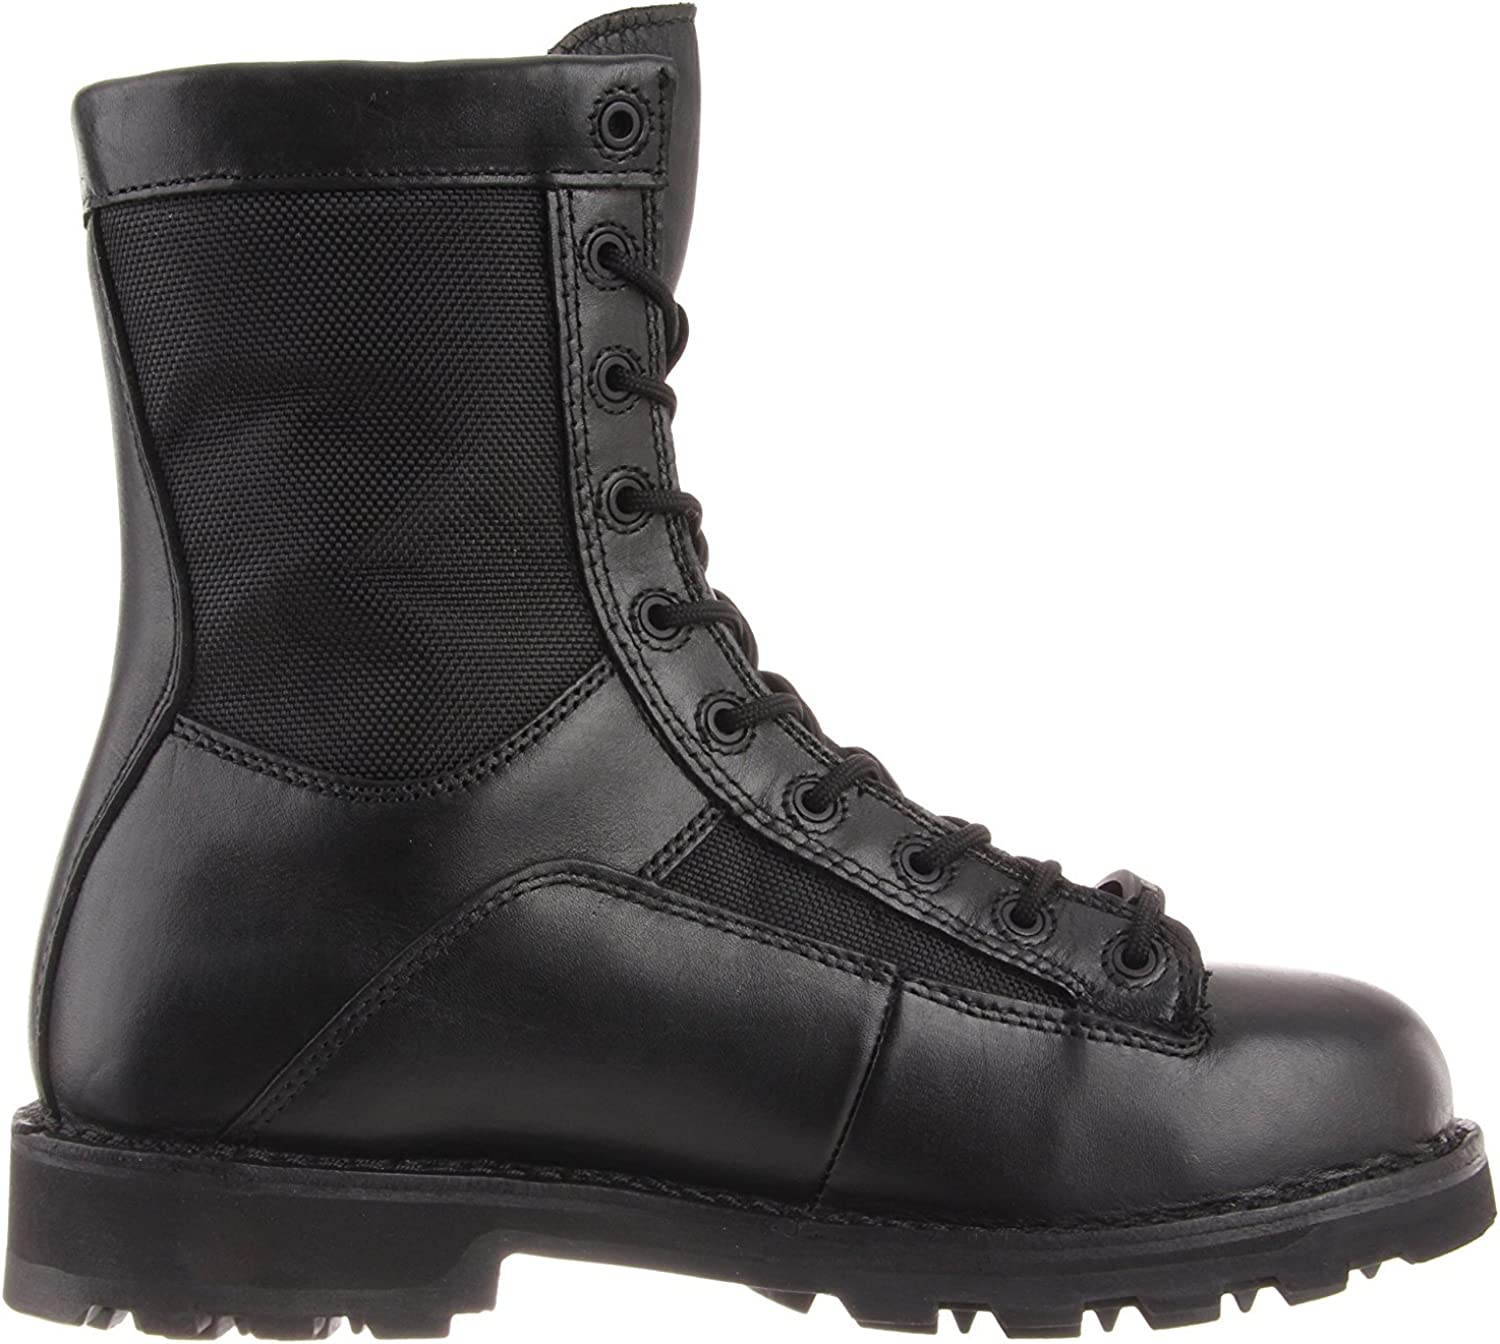 Bates Men's Defender 8 Inch Lace to Toe Waterproof Waterproof Boot Black